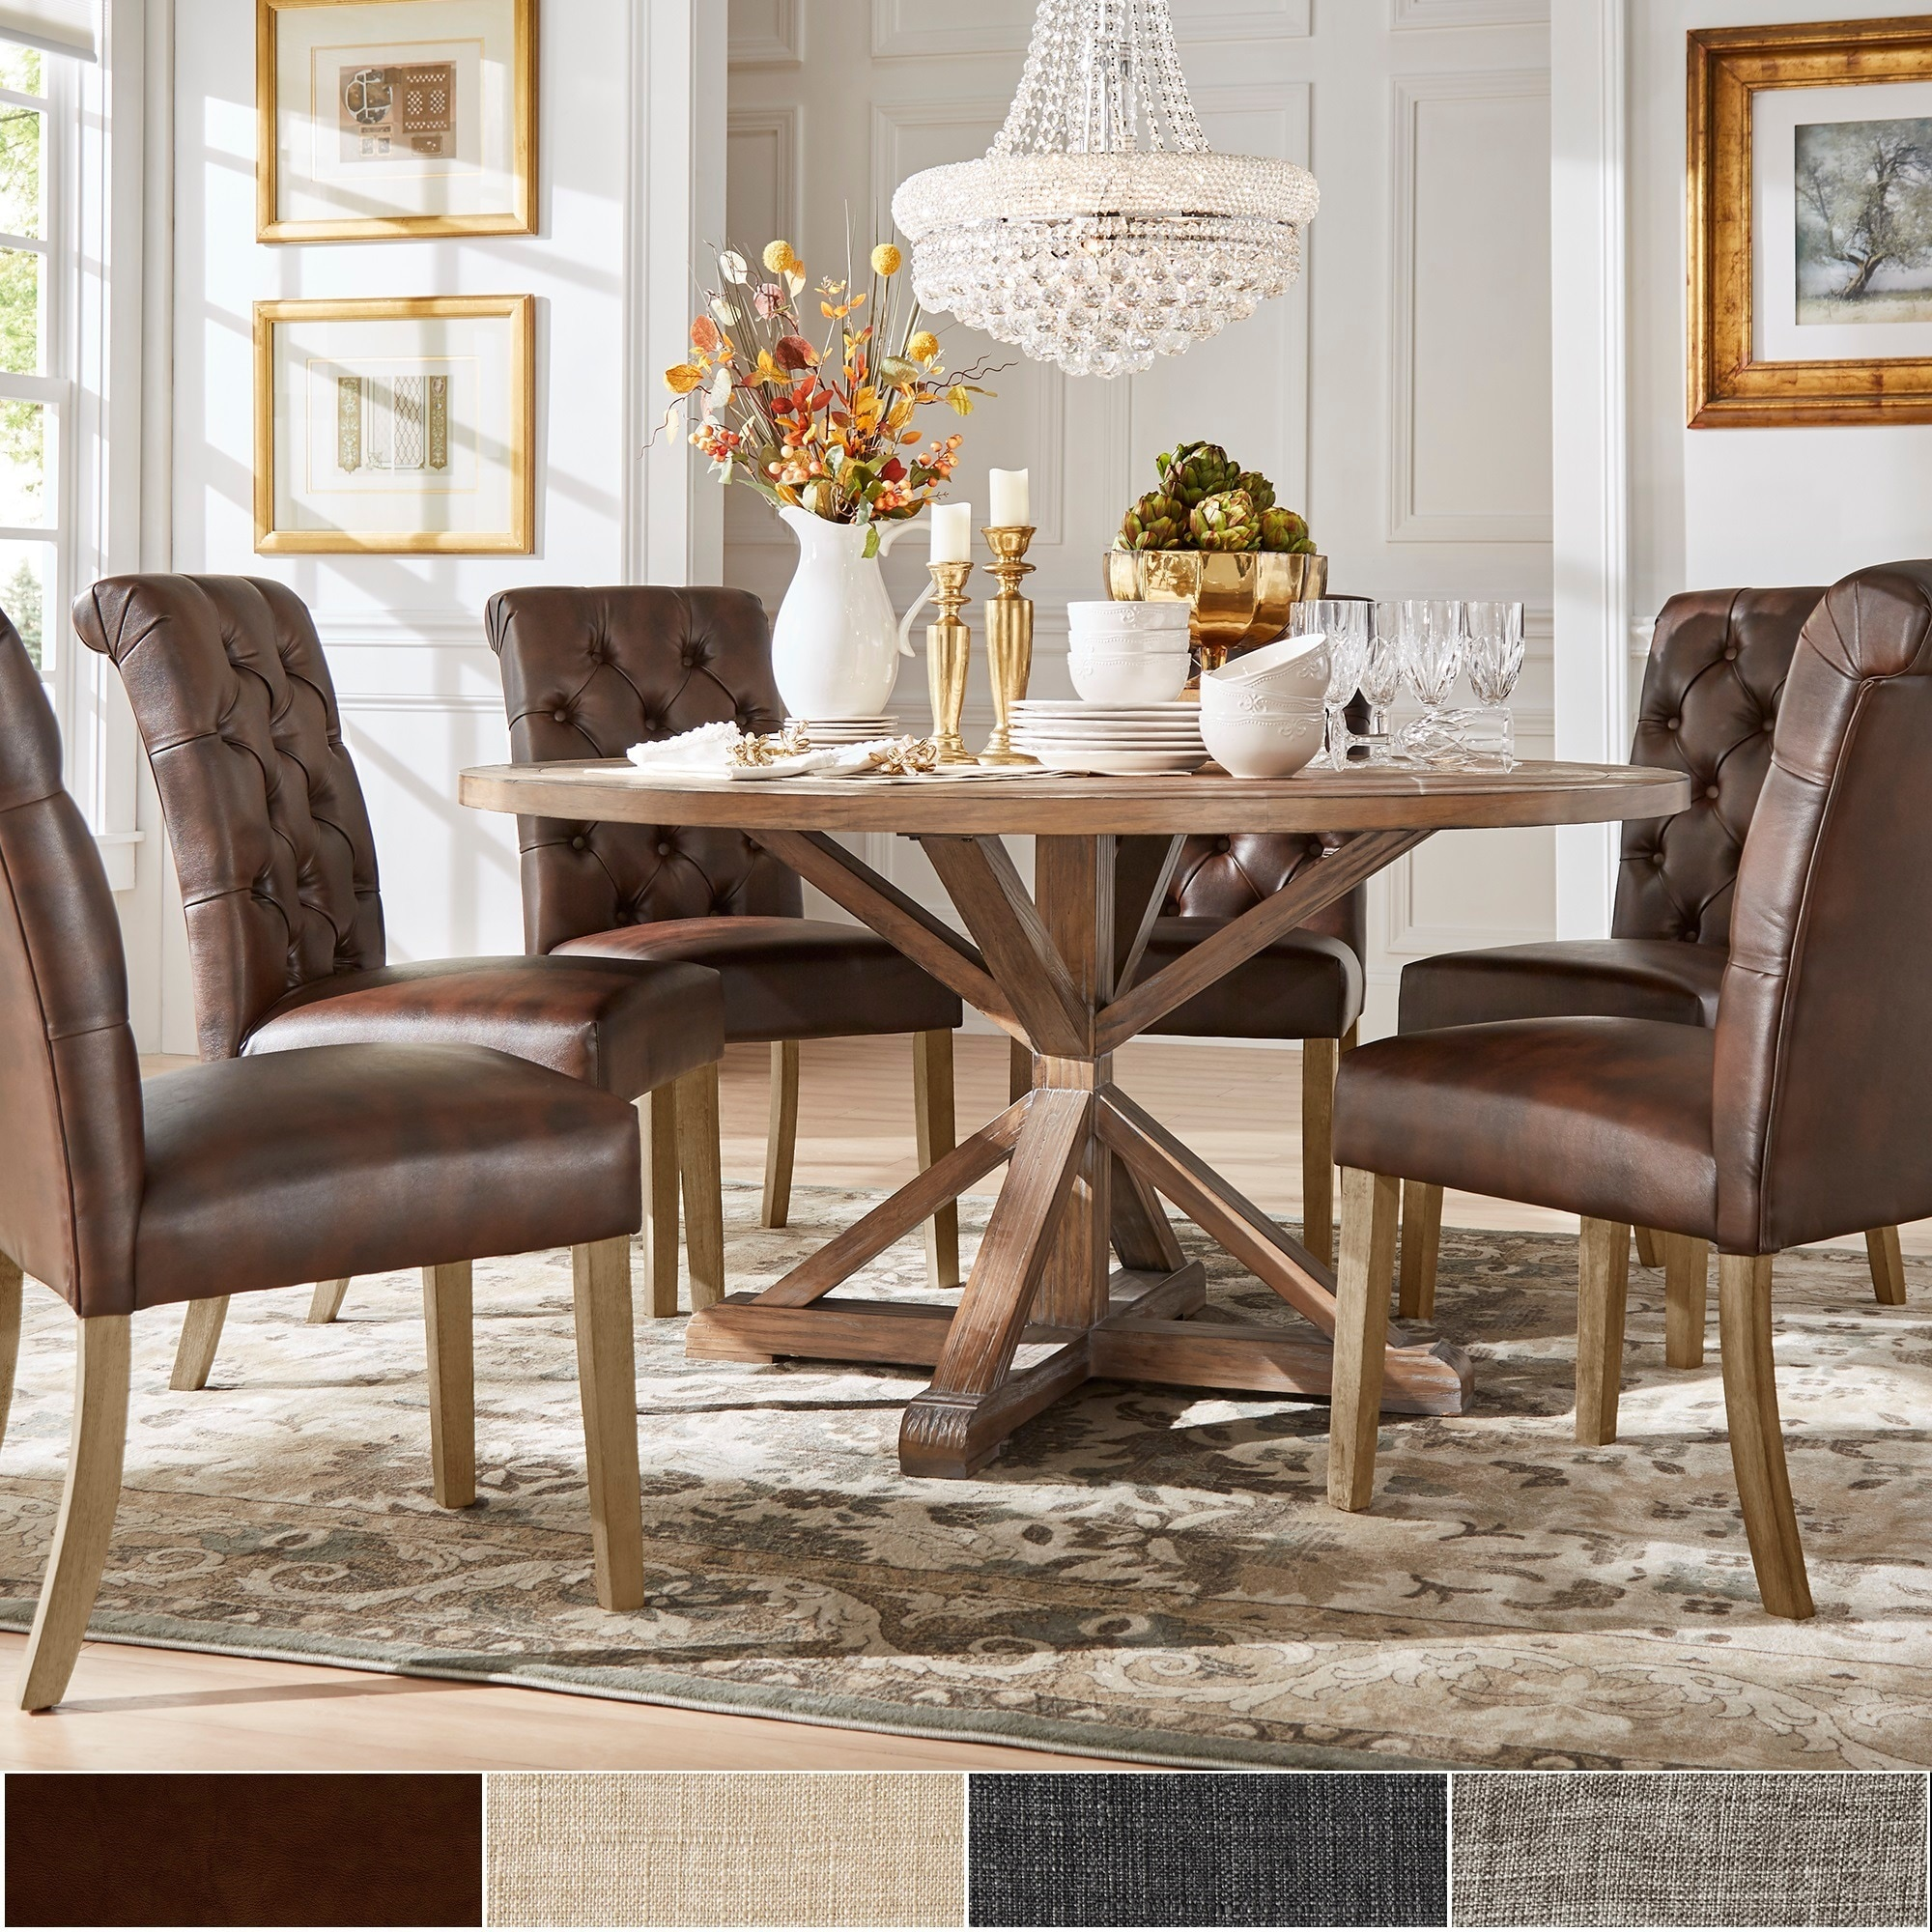 Benchwright Rustic X Base Round Pine Wood Rolled Back 7 Piece Dining Set By  INSPIRE Q Artisan   Free Shipping Today   Overstock   17228681